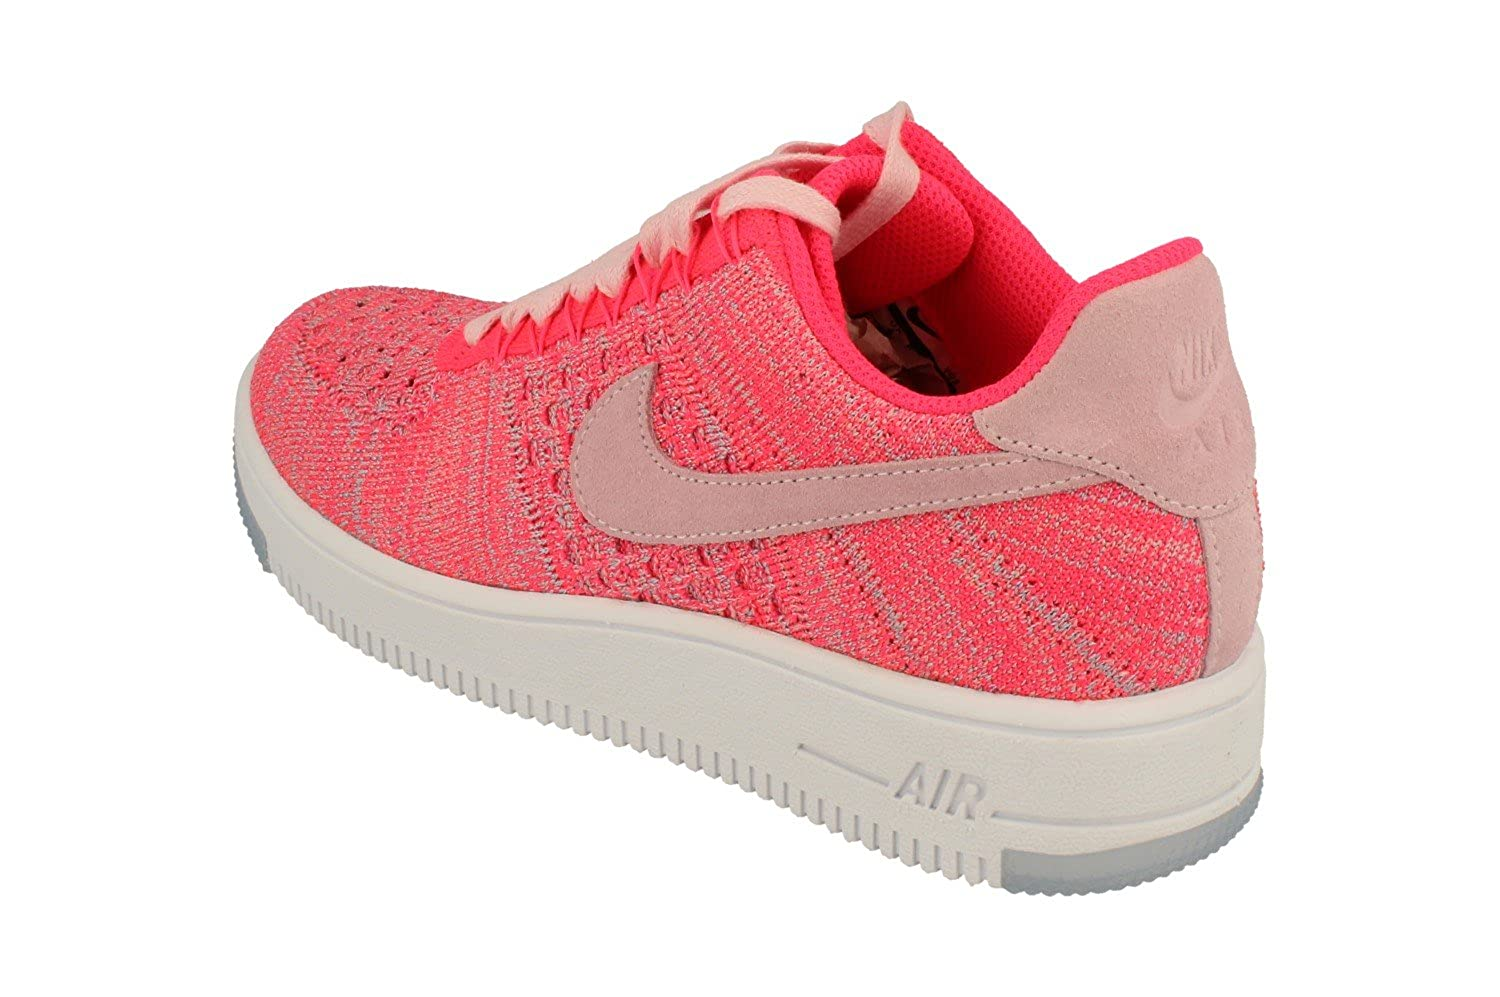 finest selection 37604 c89de Amazon.com   NIKE Womens Af1 Air Force 1 Flyknit Low Running Trainers 820256  Sneakers Shoes (UK 4 US 6.5 EU 37.5, Prism Pink 601)   Road Running